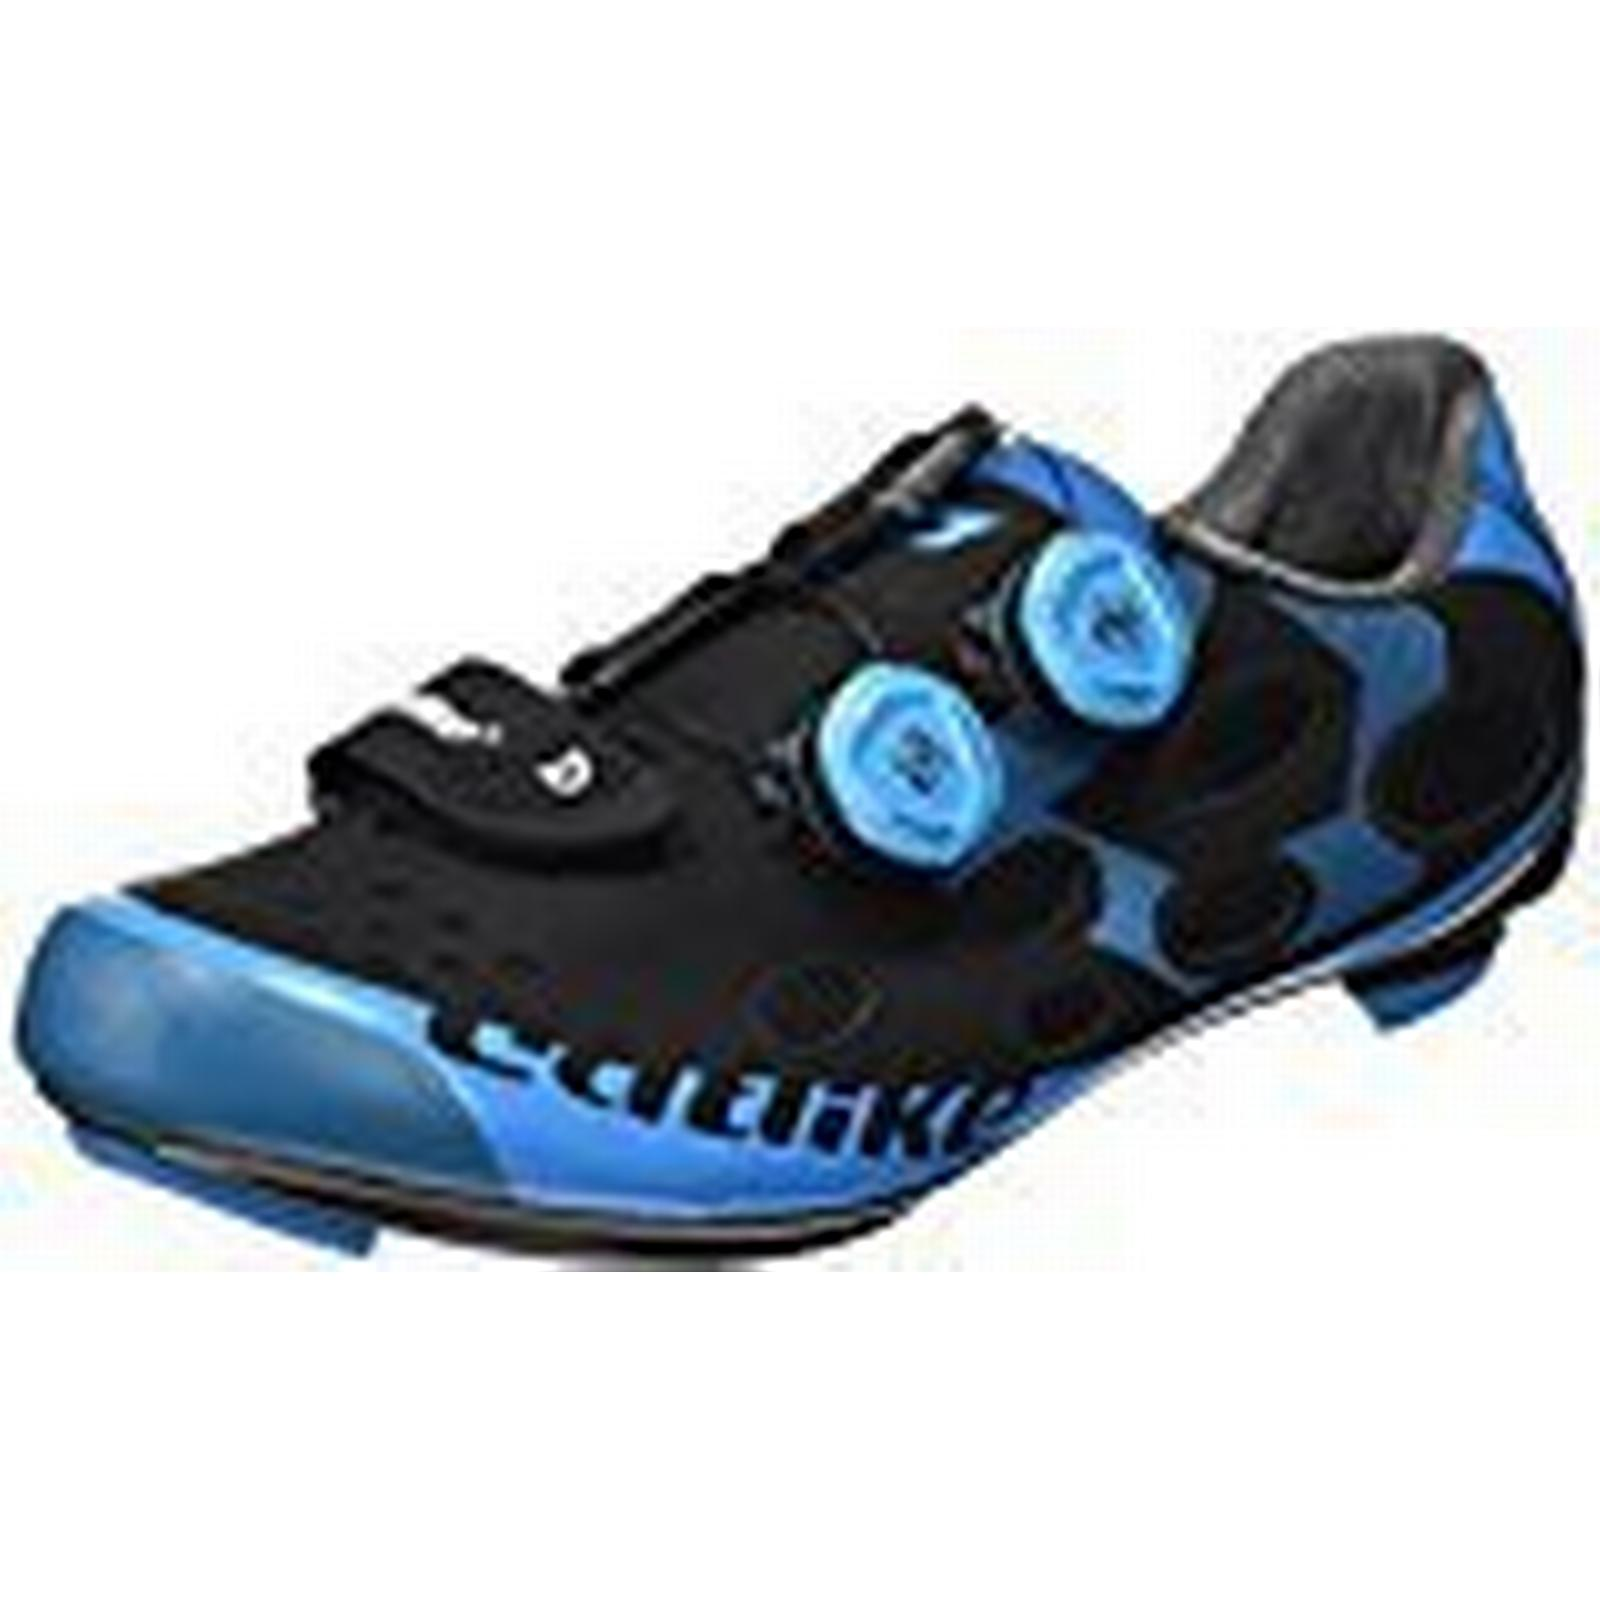 Catlike Unisex Adults' Biking Zapatillas Whisper Road 2016 Biking Adults' Shoes, Black (Negro/Azul 000), 7.5 UK 6eb3e9